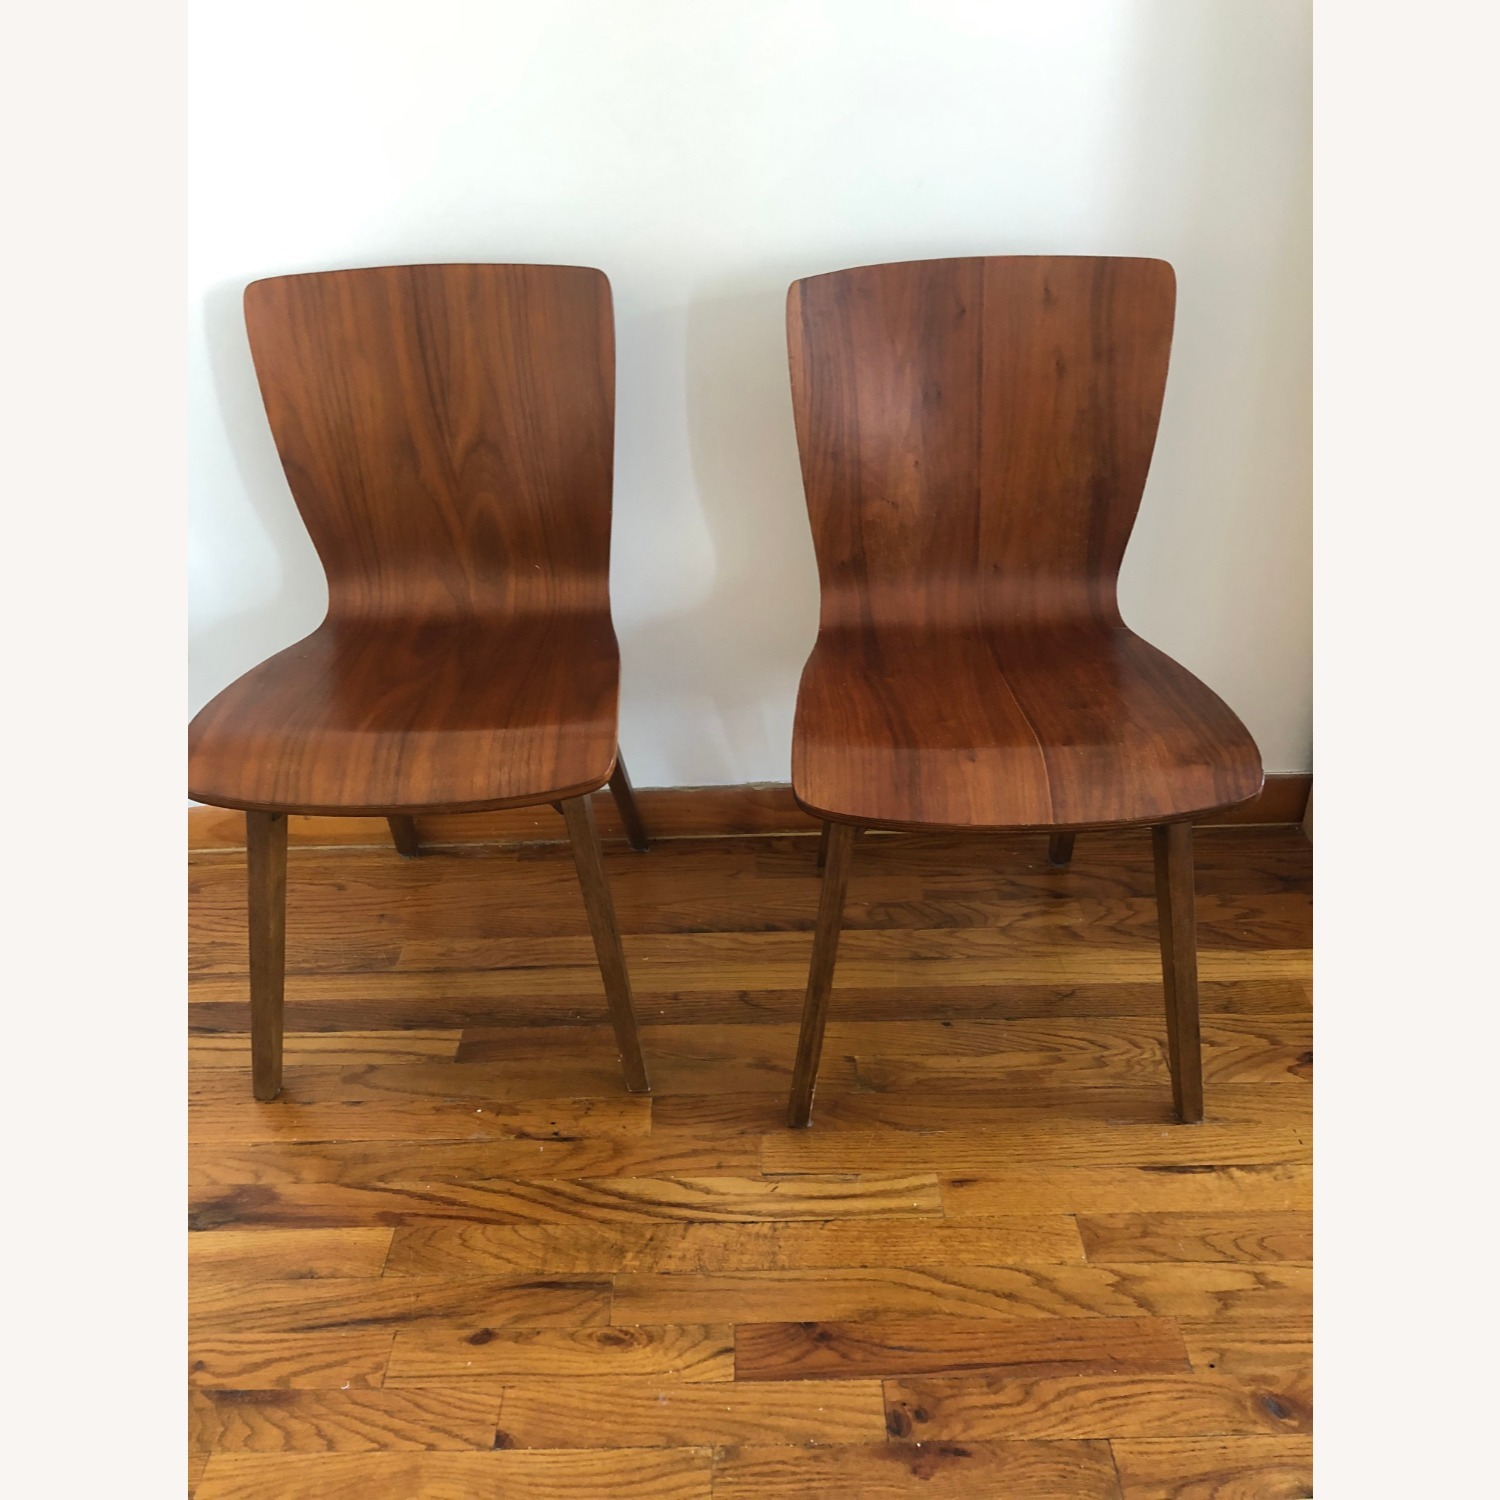 West Elm Crest Bentwood Dining Chair (Set of 2) - image-4